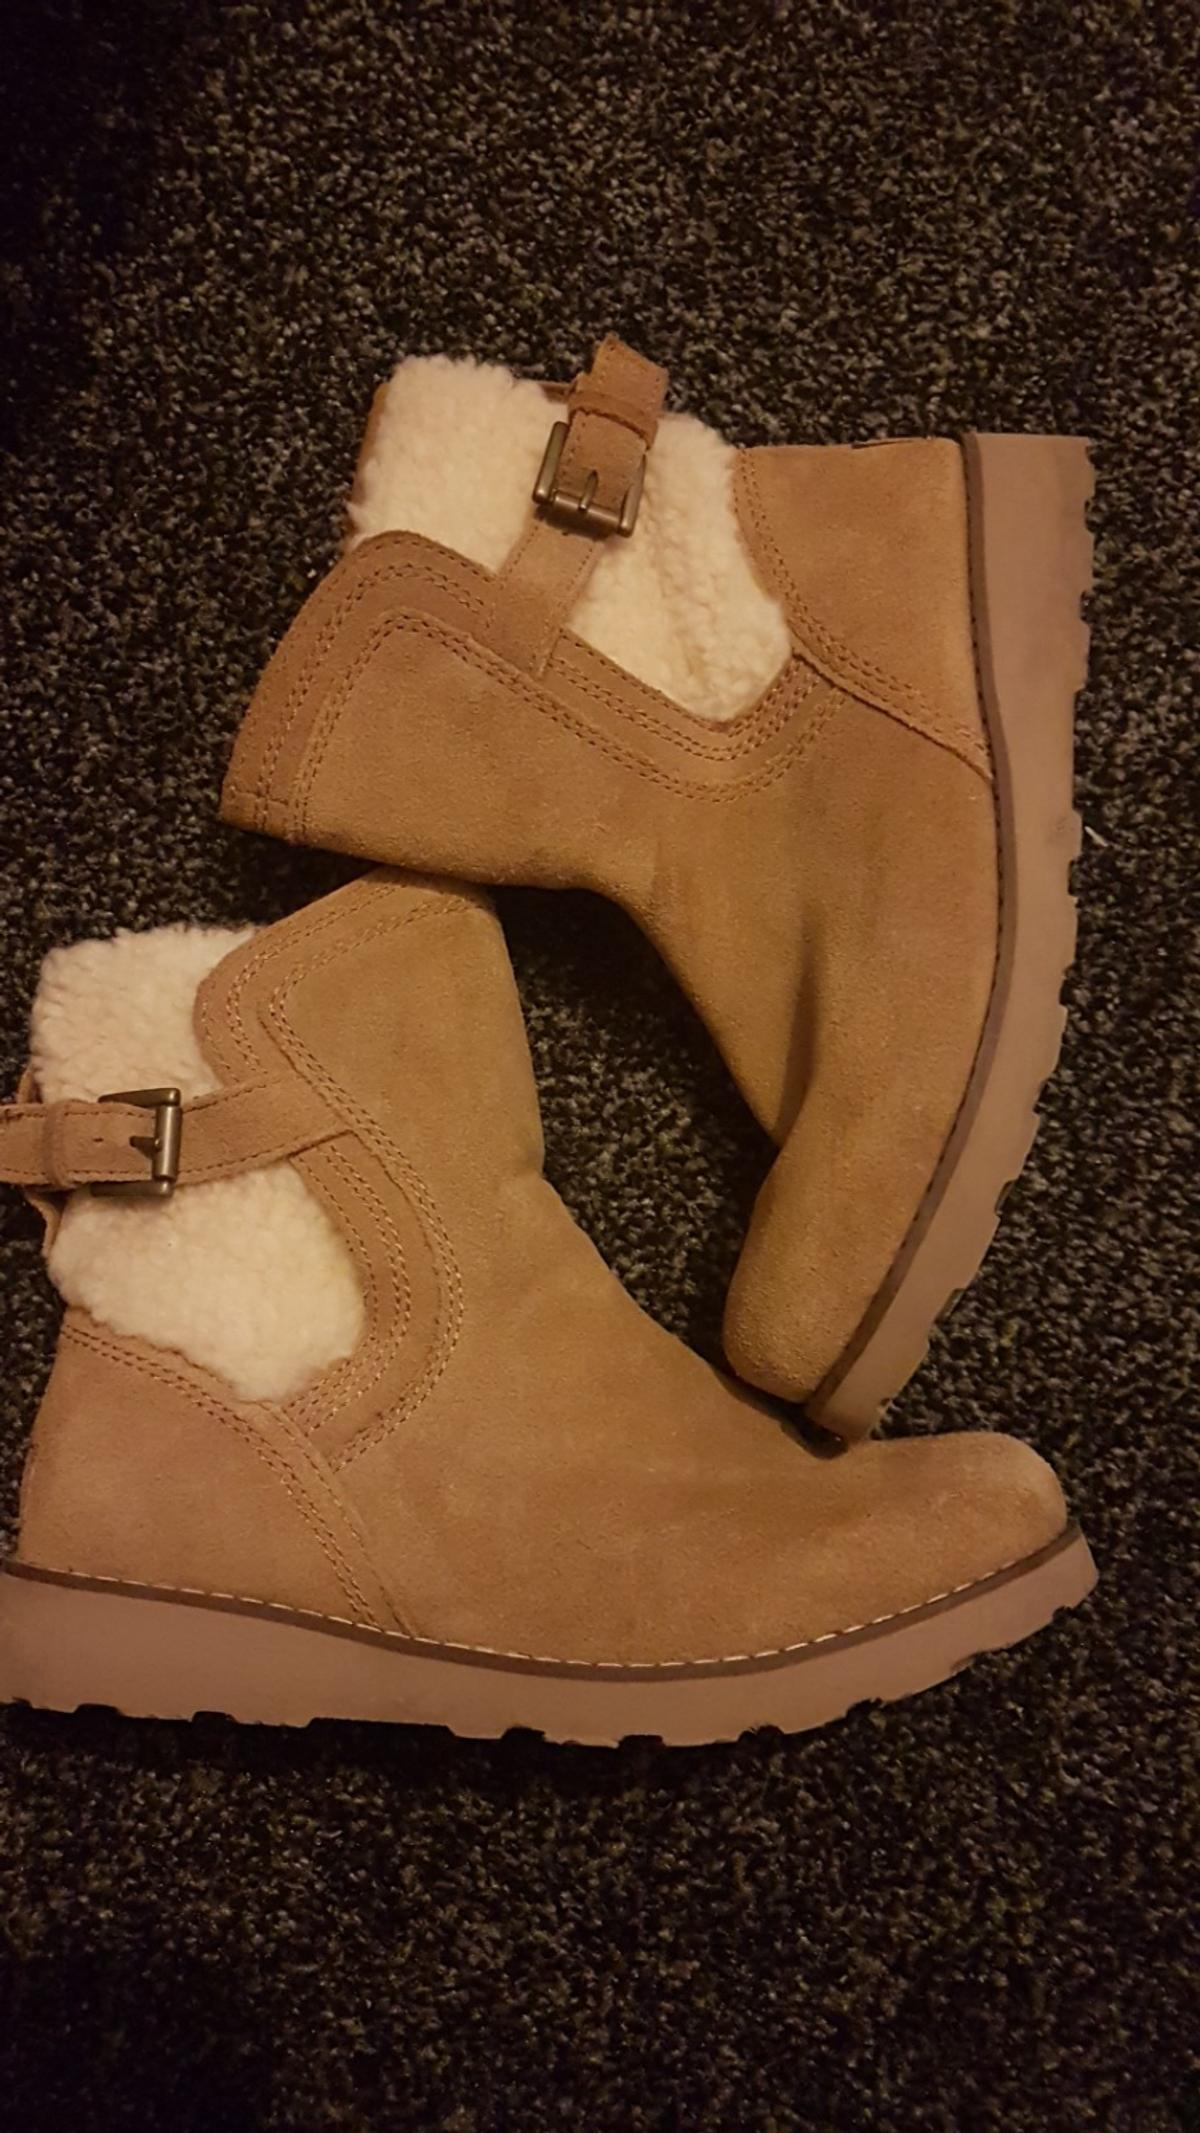 422cfeeb3e6 older girls ugg boots size 3 uk